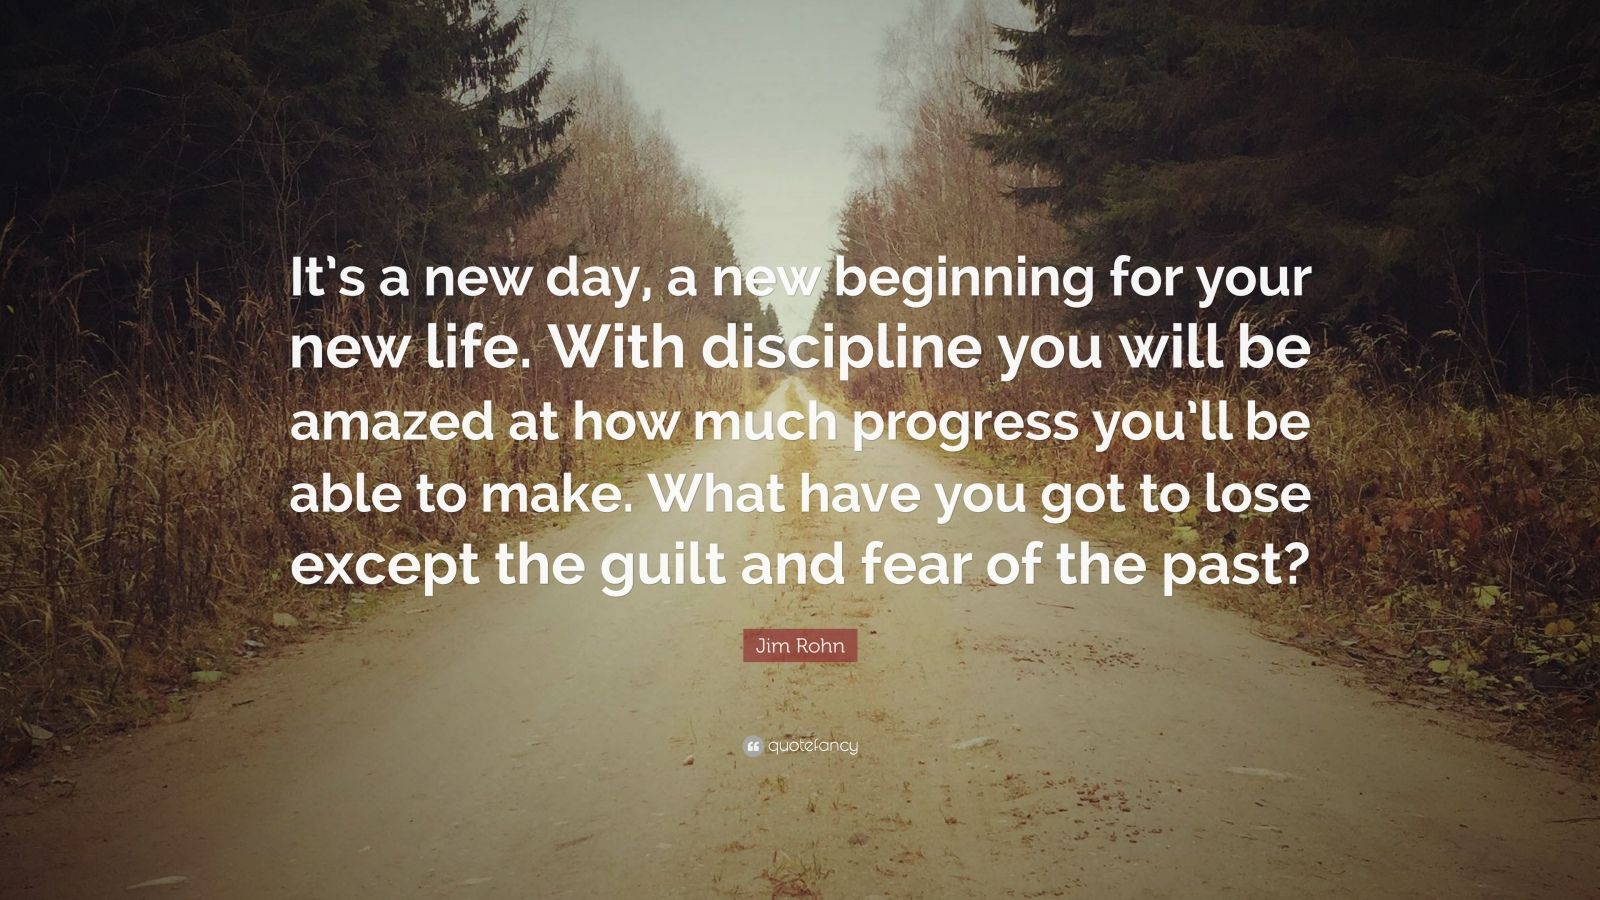 "Jim Rohn Quote: ""It's a new day, a new beginning for your new life. With discipline you will be amazed at how much progress you'll be able to make. What have you got to lose except the guilt and fear of the past?"""